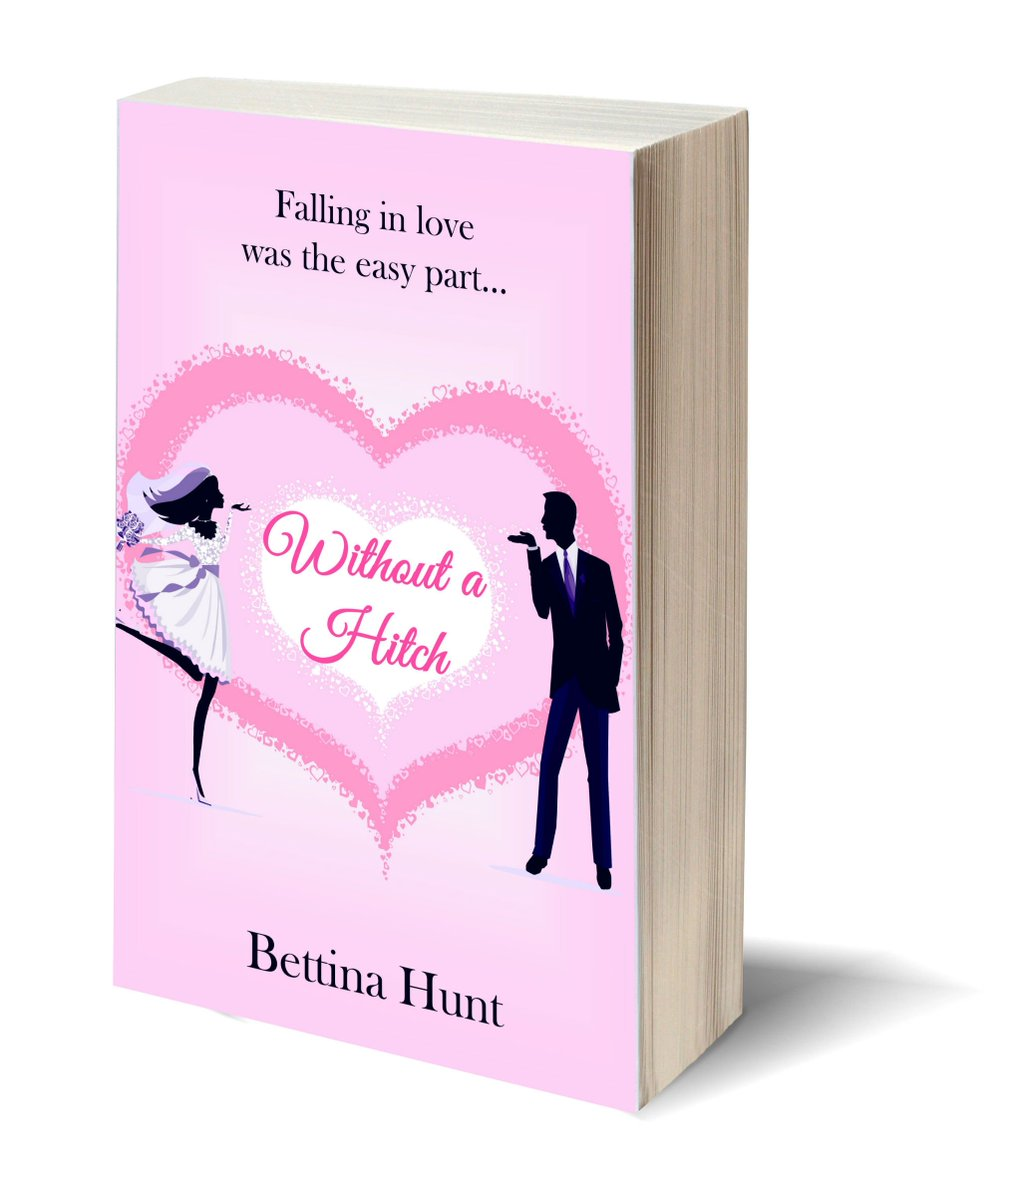 New book - 'Without A Hitch' coming soon! #womensfiction #contemporaryfiction #wedding #bride #weddingplanning https://t.co/dKGLE0RM9p